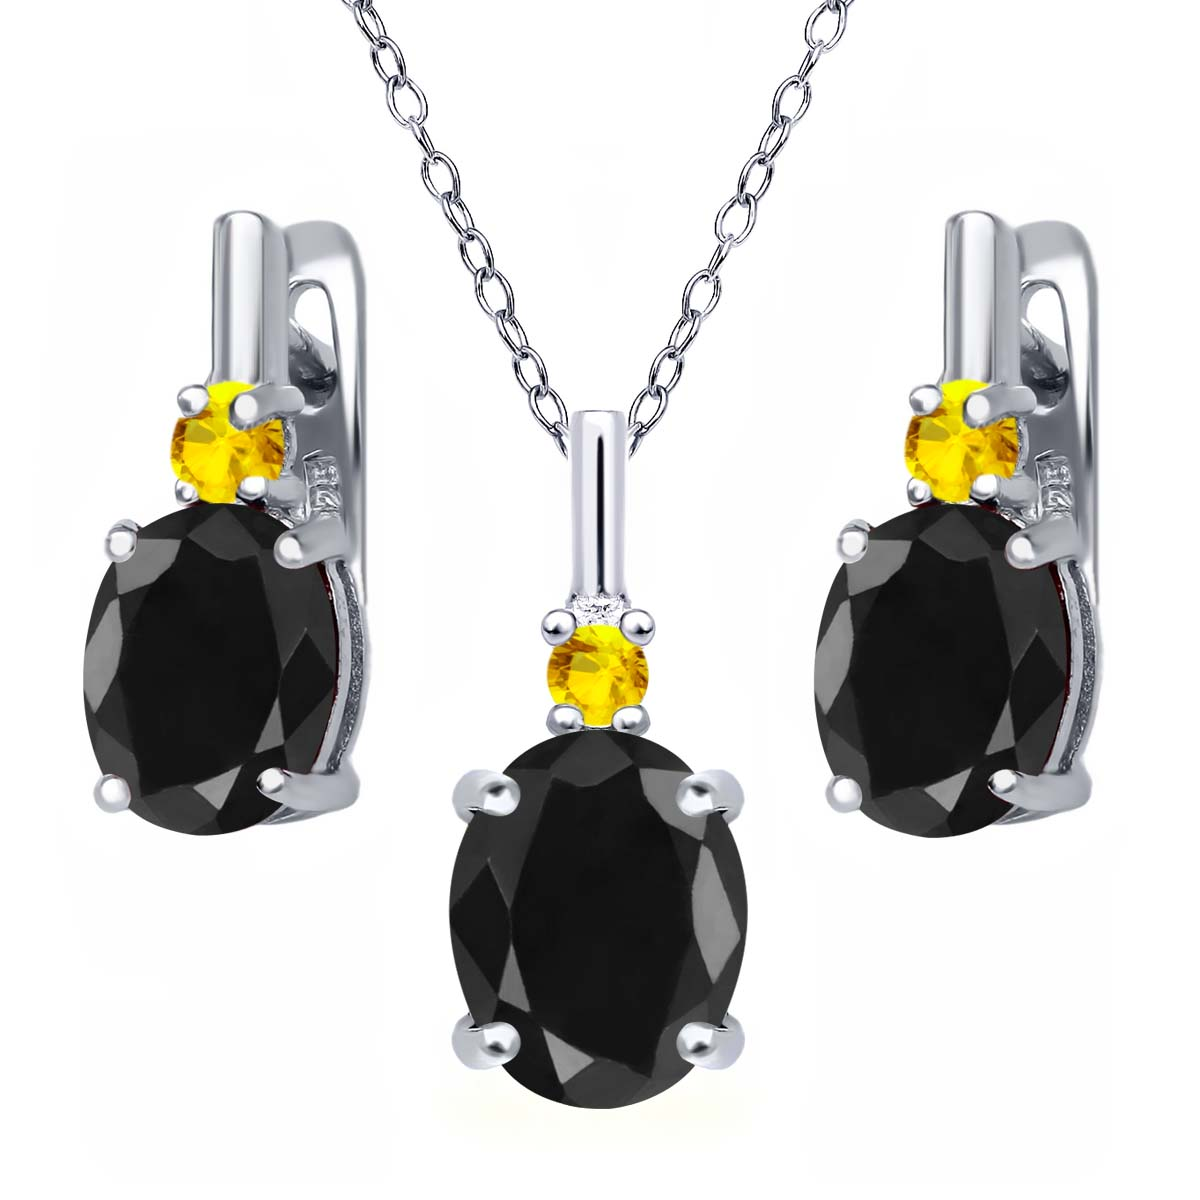 7.71 Ct Black Sapphire Yellow Sapphire 925 Sterling Silver Pendant Earrings Set by